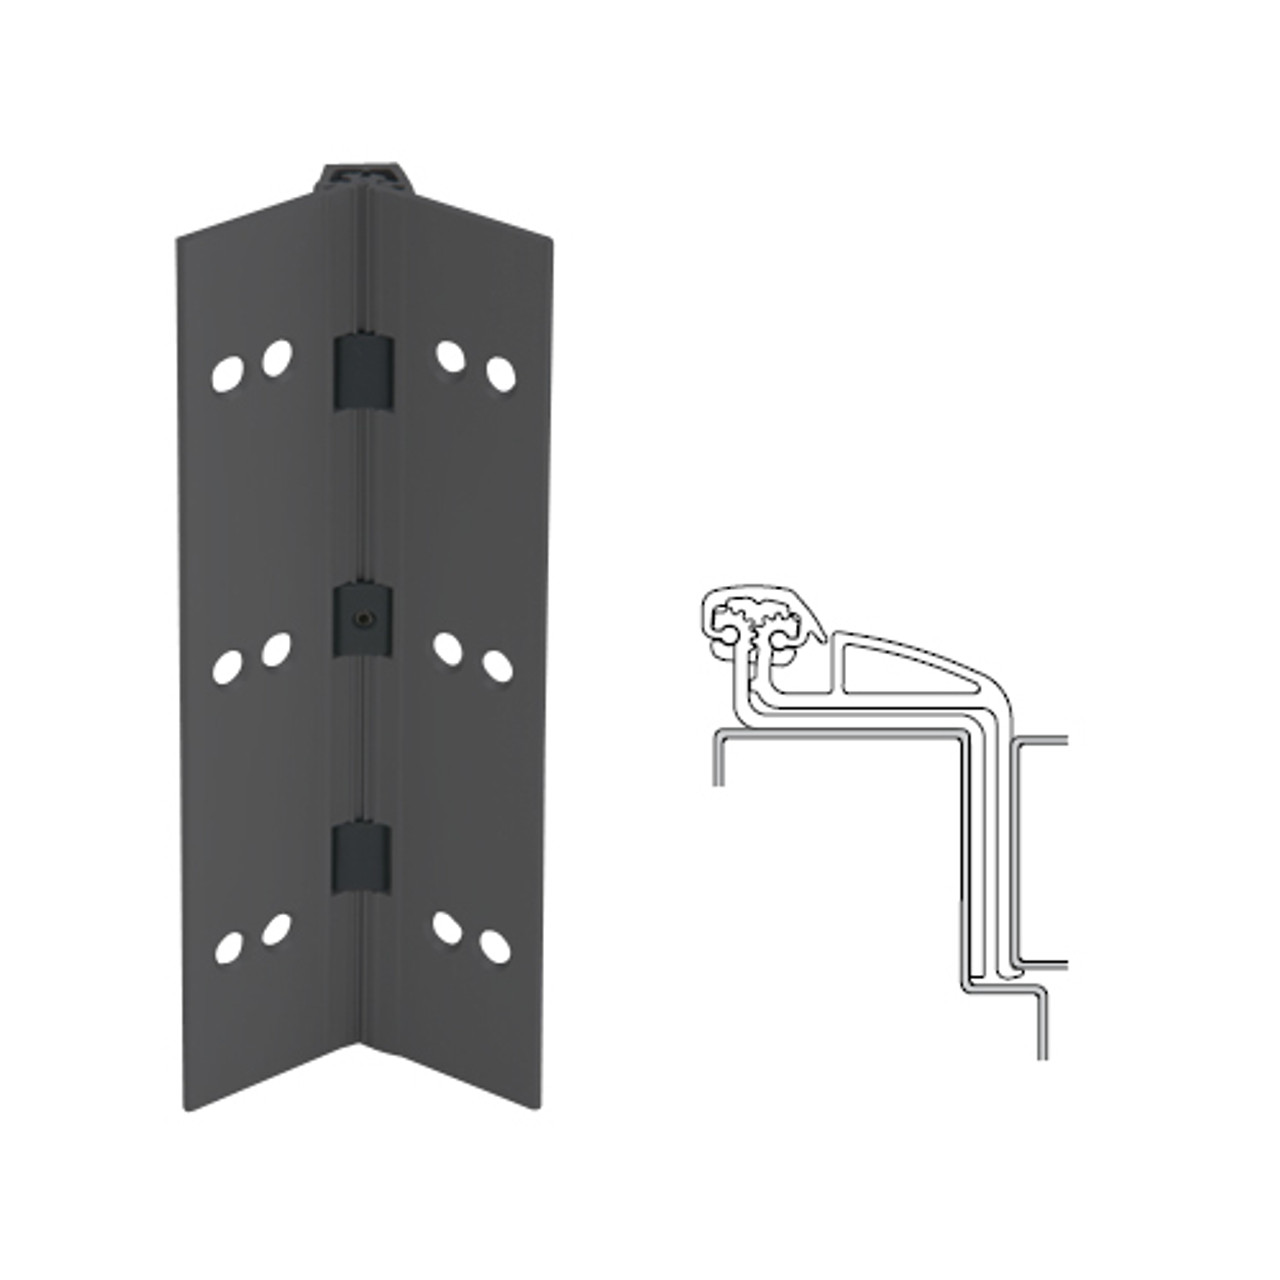 041XY-315AN-95-TFWD IVES Full Mortise Continuous Geared Hinges with Thread Forming Screws in Anodized Black